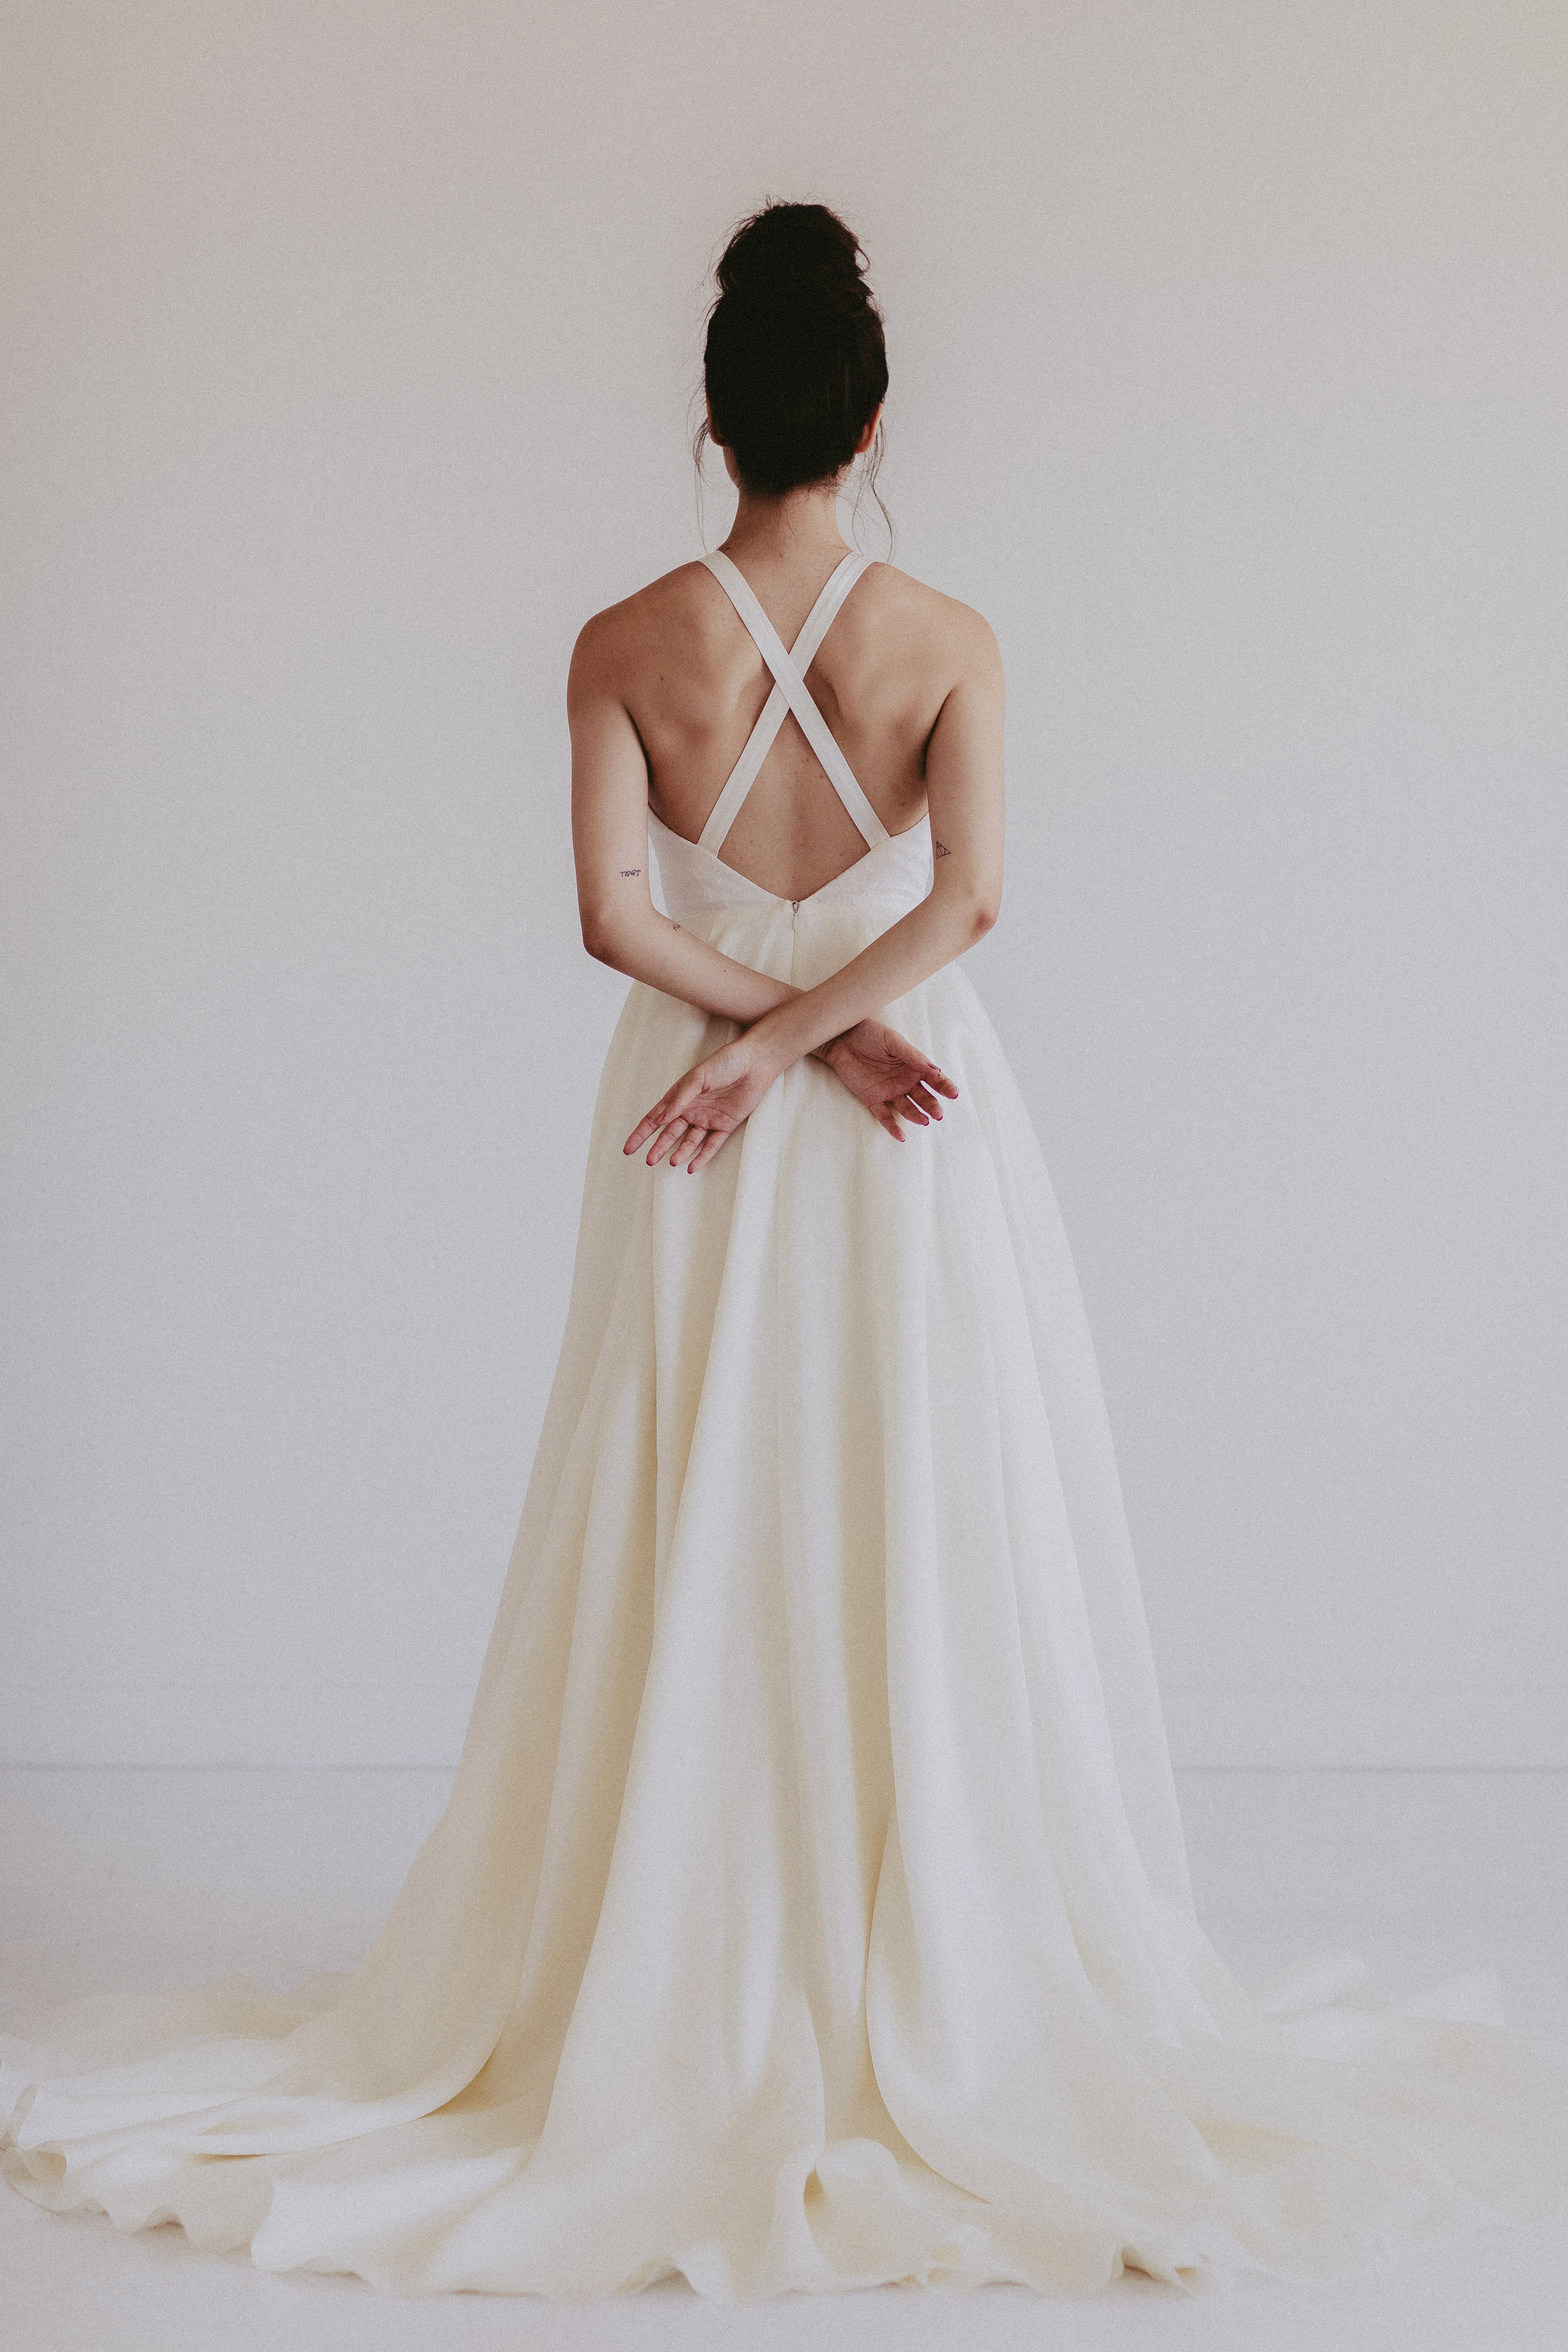 Remington by Chantel lauren hand painted ivory wedding gown